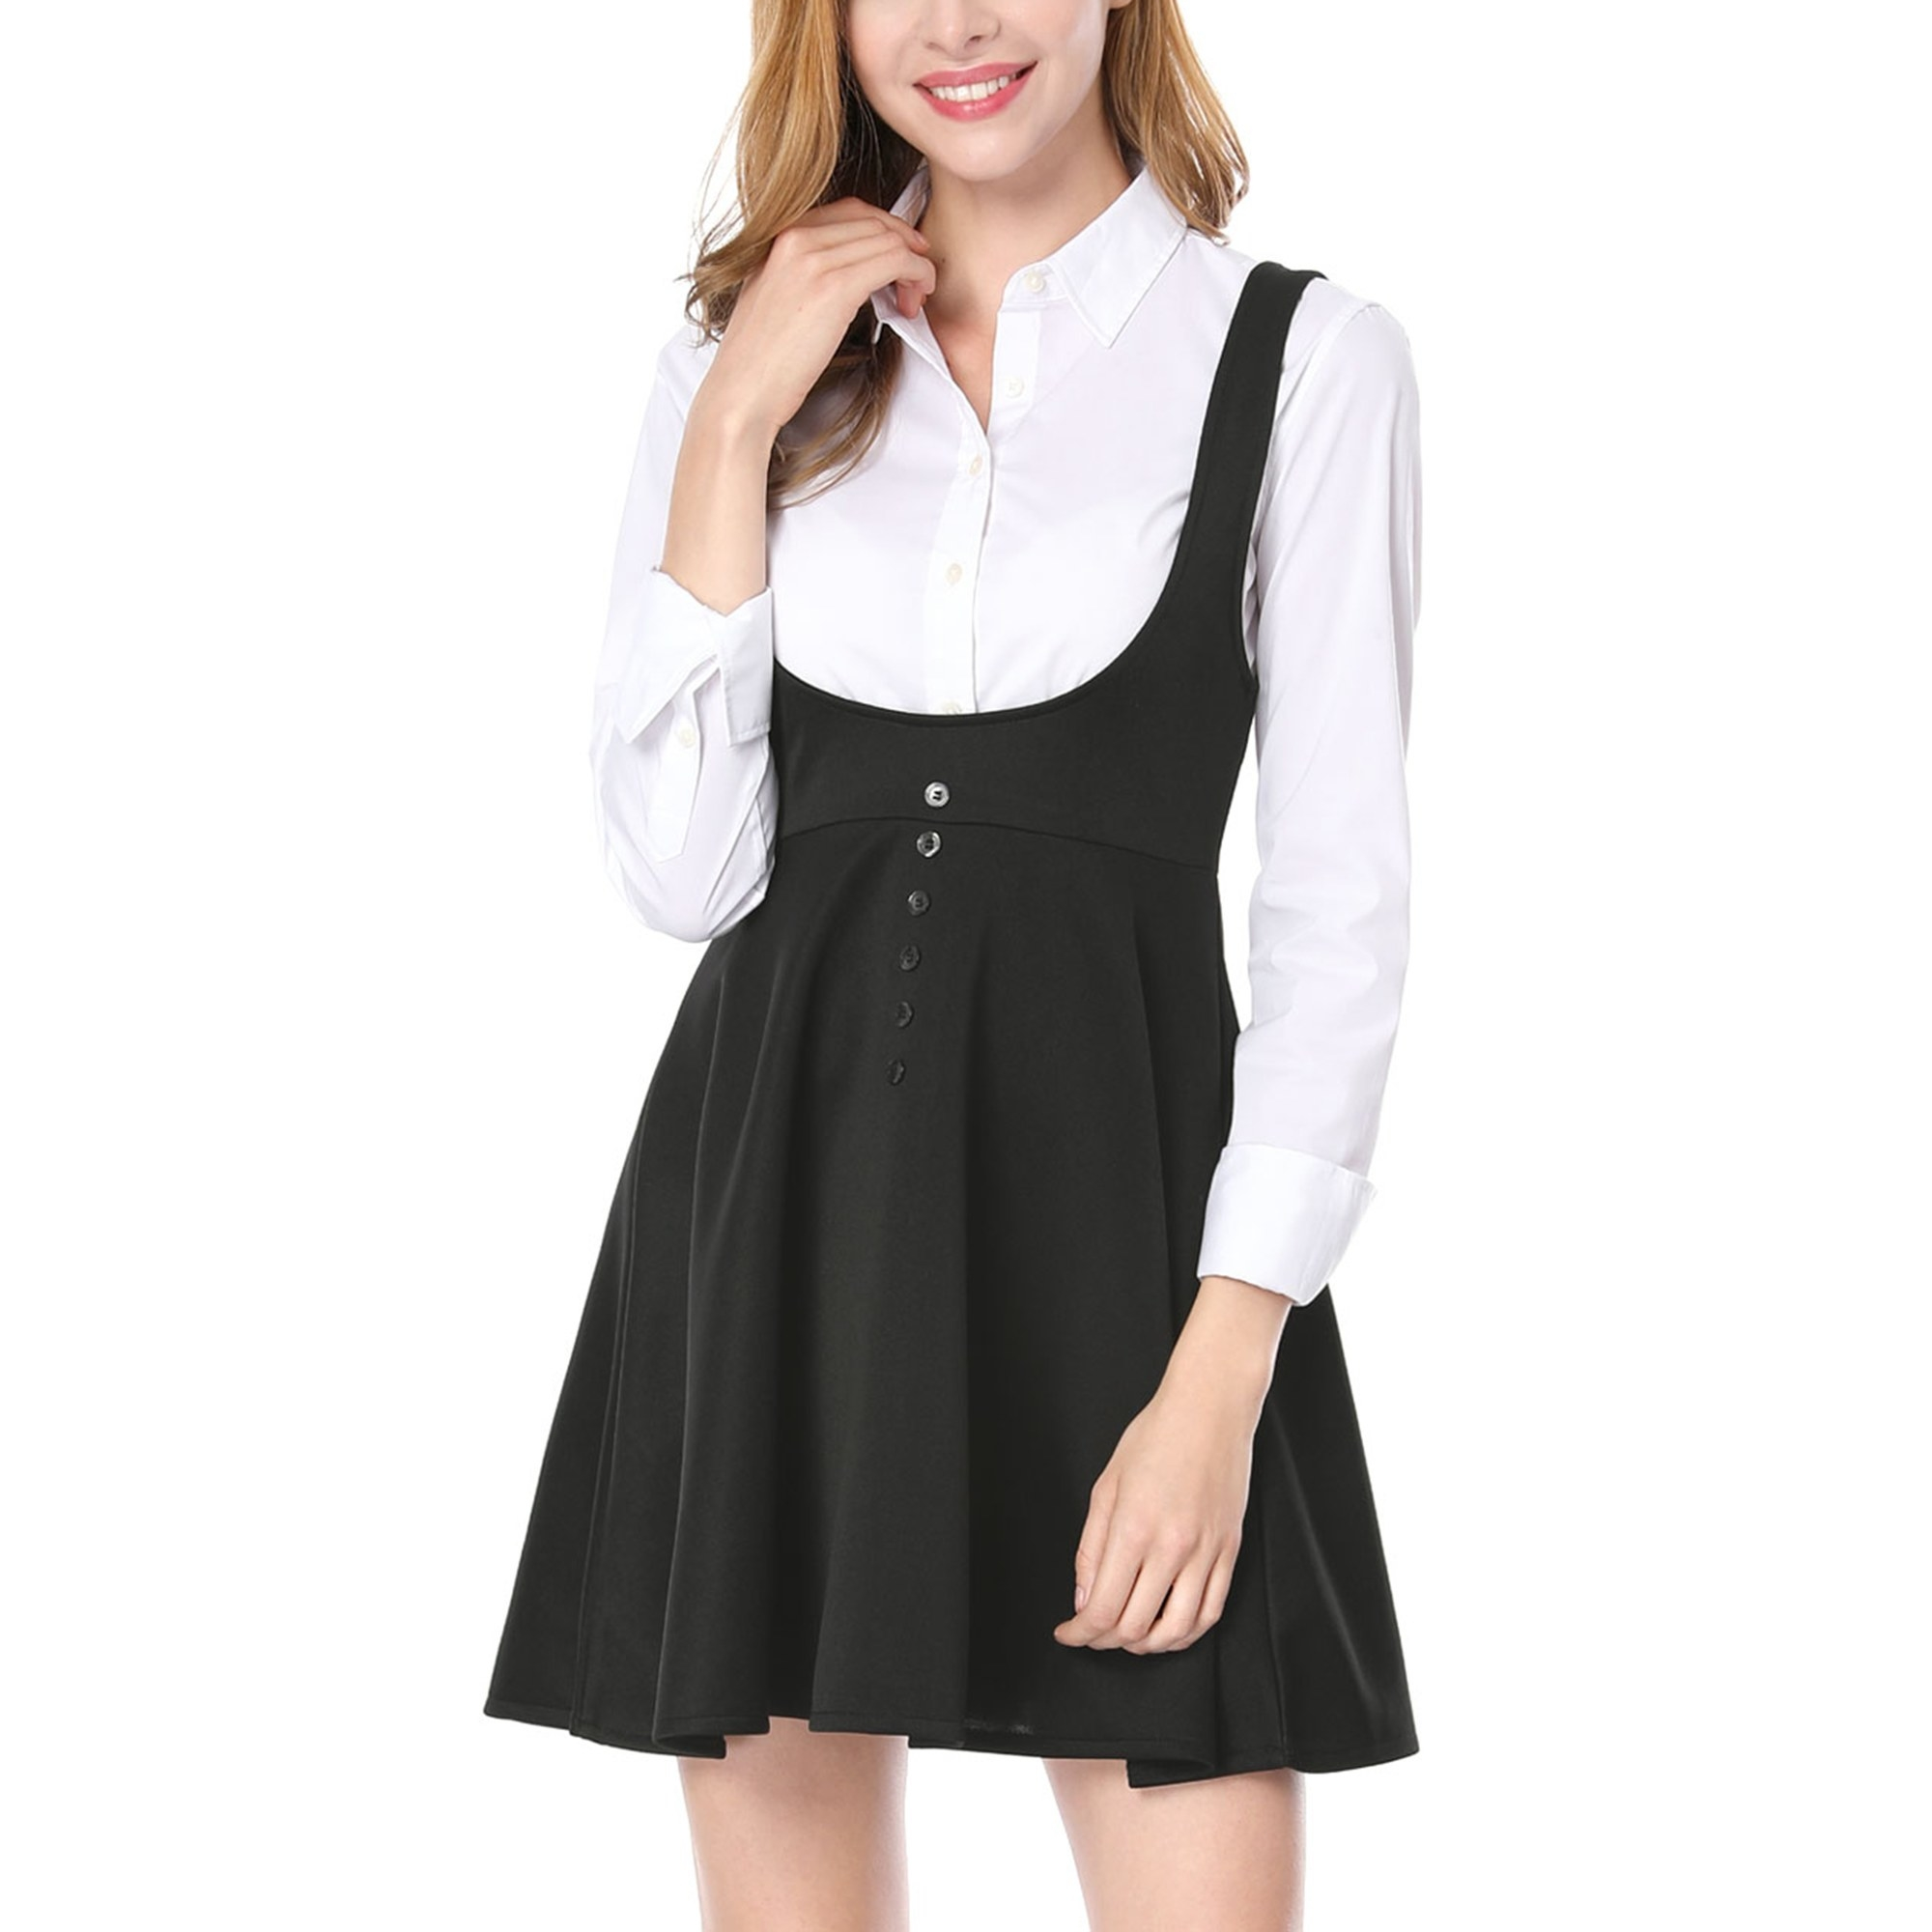 The black suspender dress